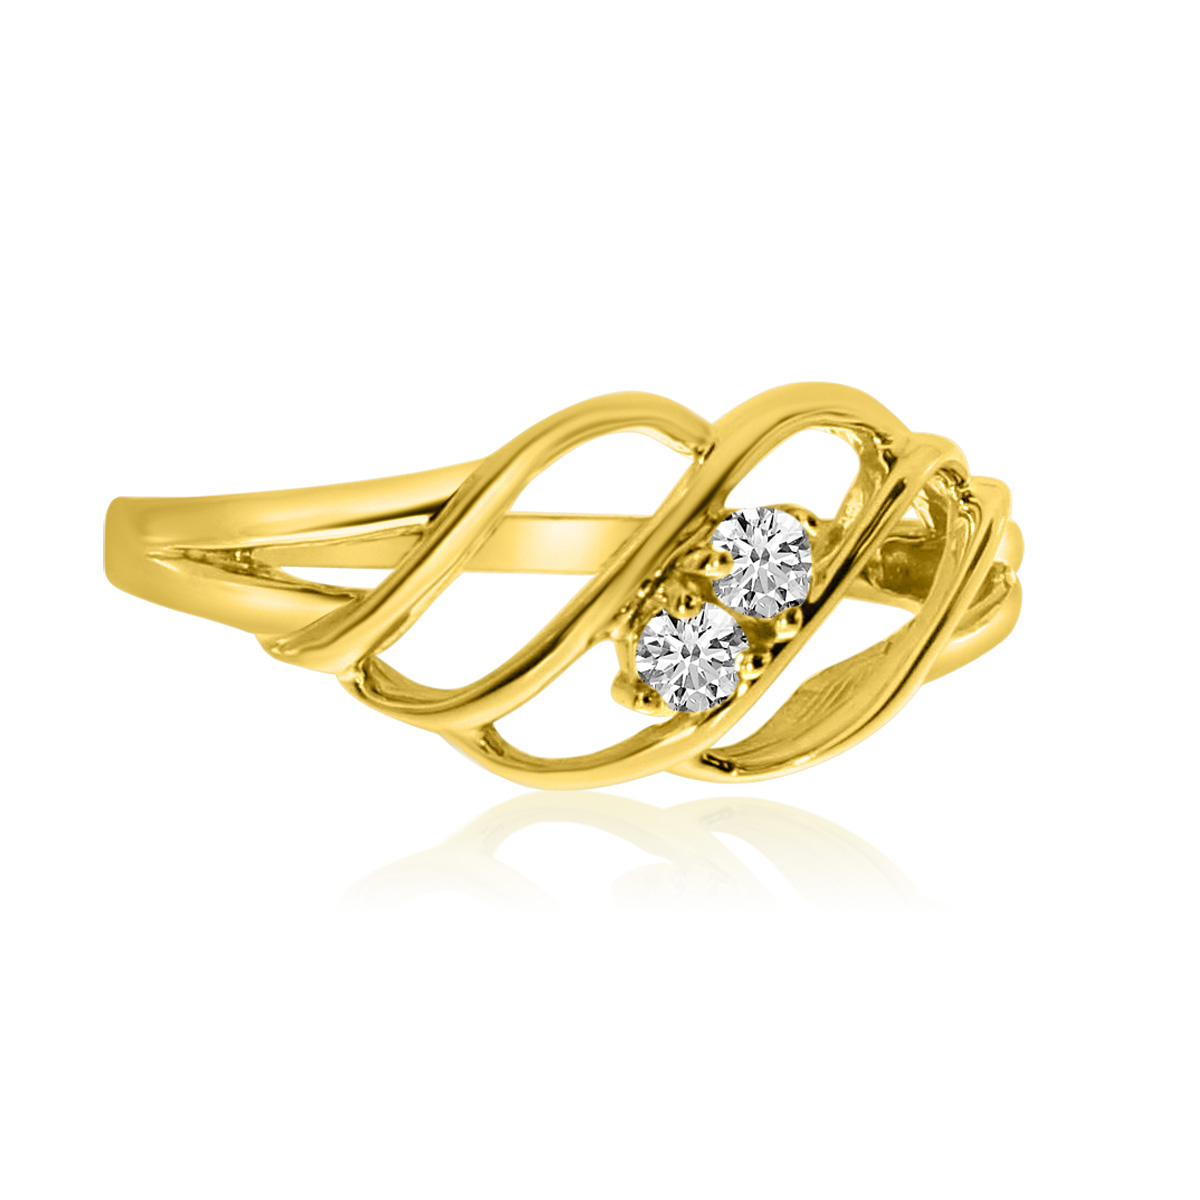 14K Yellow Gold Woven Two-Stone Diamond Ring by